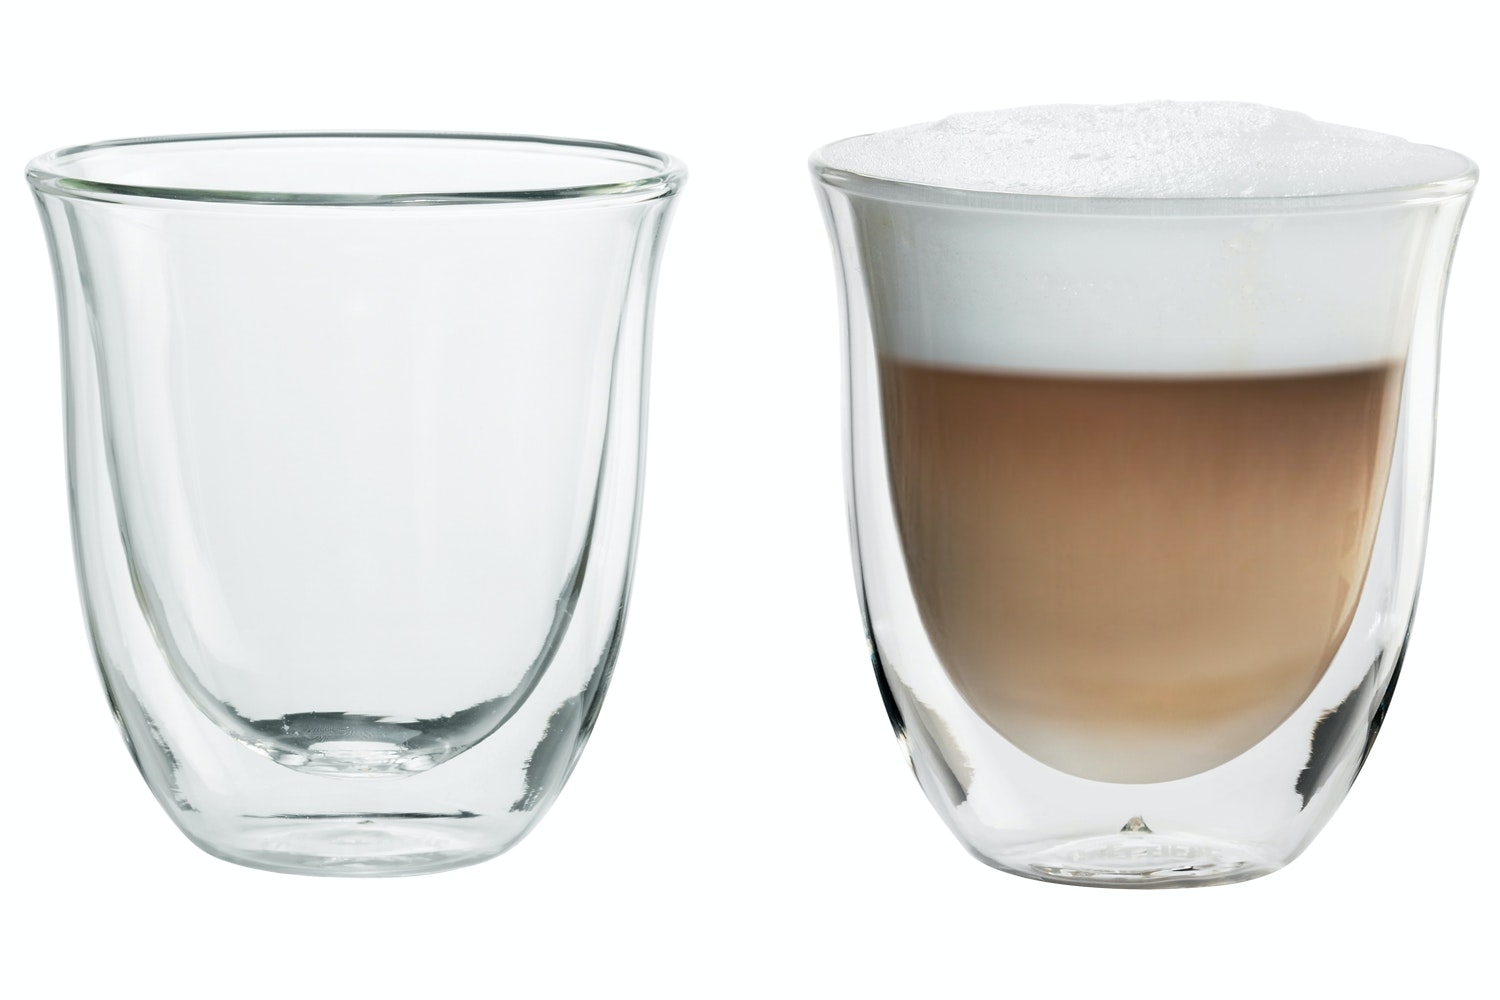 Cappucino glasses